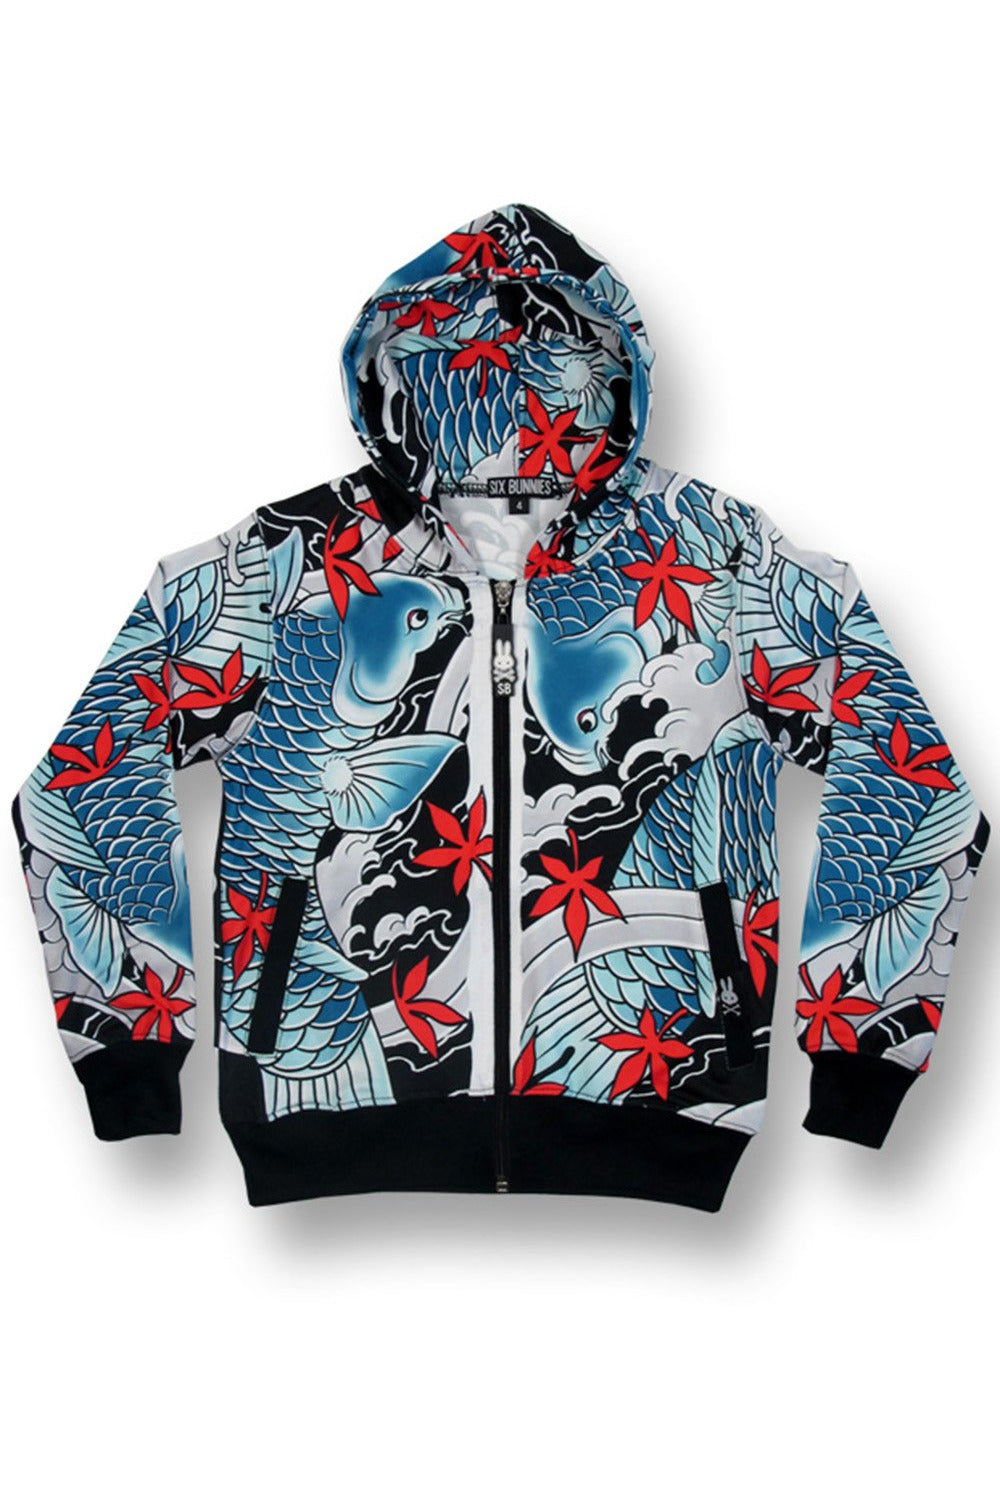 Koi Hoody - High Voltage Clothing & Accessories Ltd